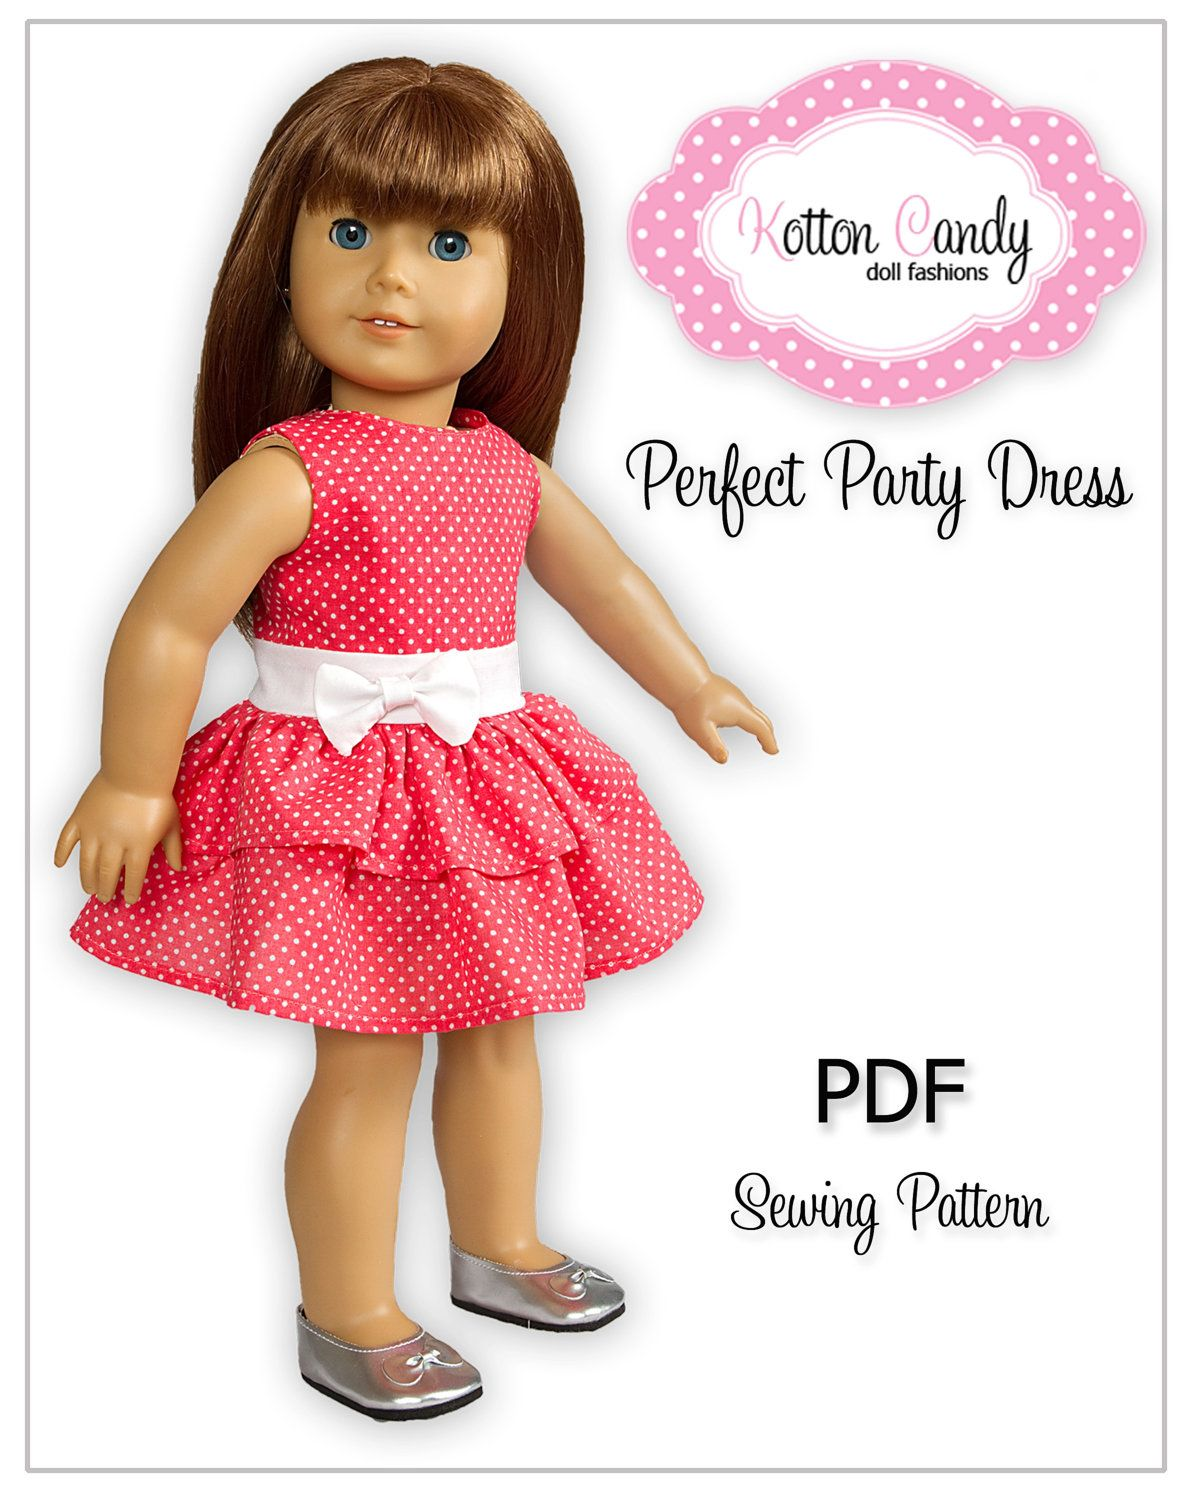 Girl American doll dress patterns pictures